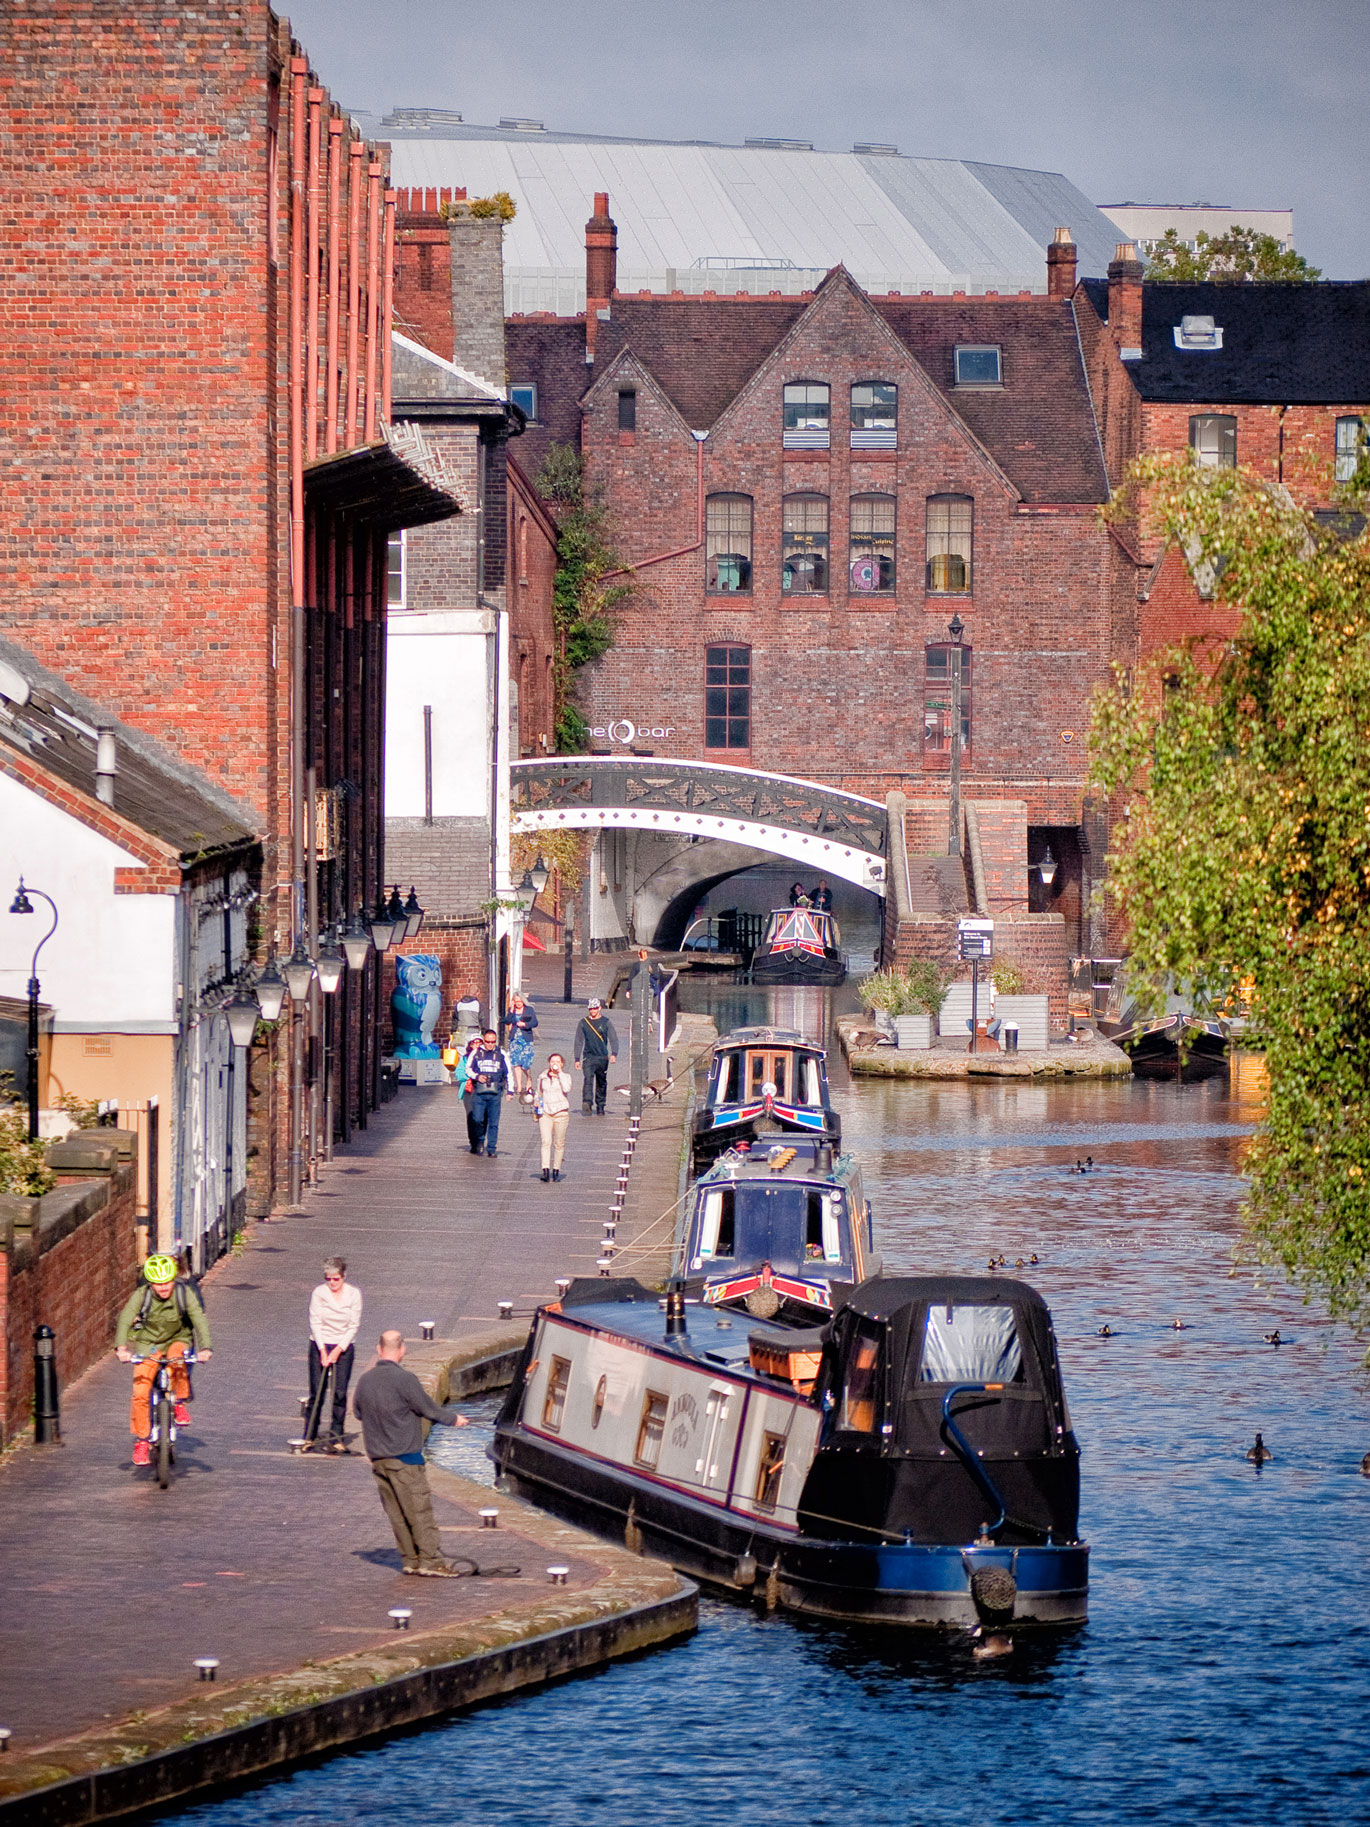 Gas Street Basin from The Mailbox (with the NIA in the background)